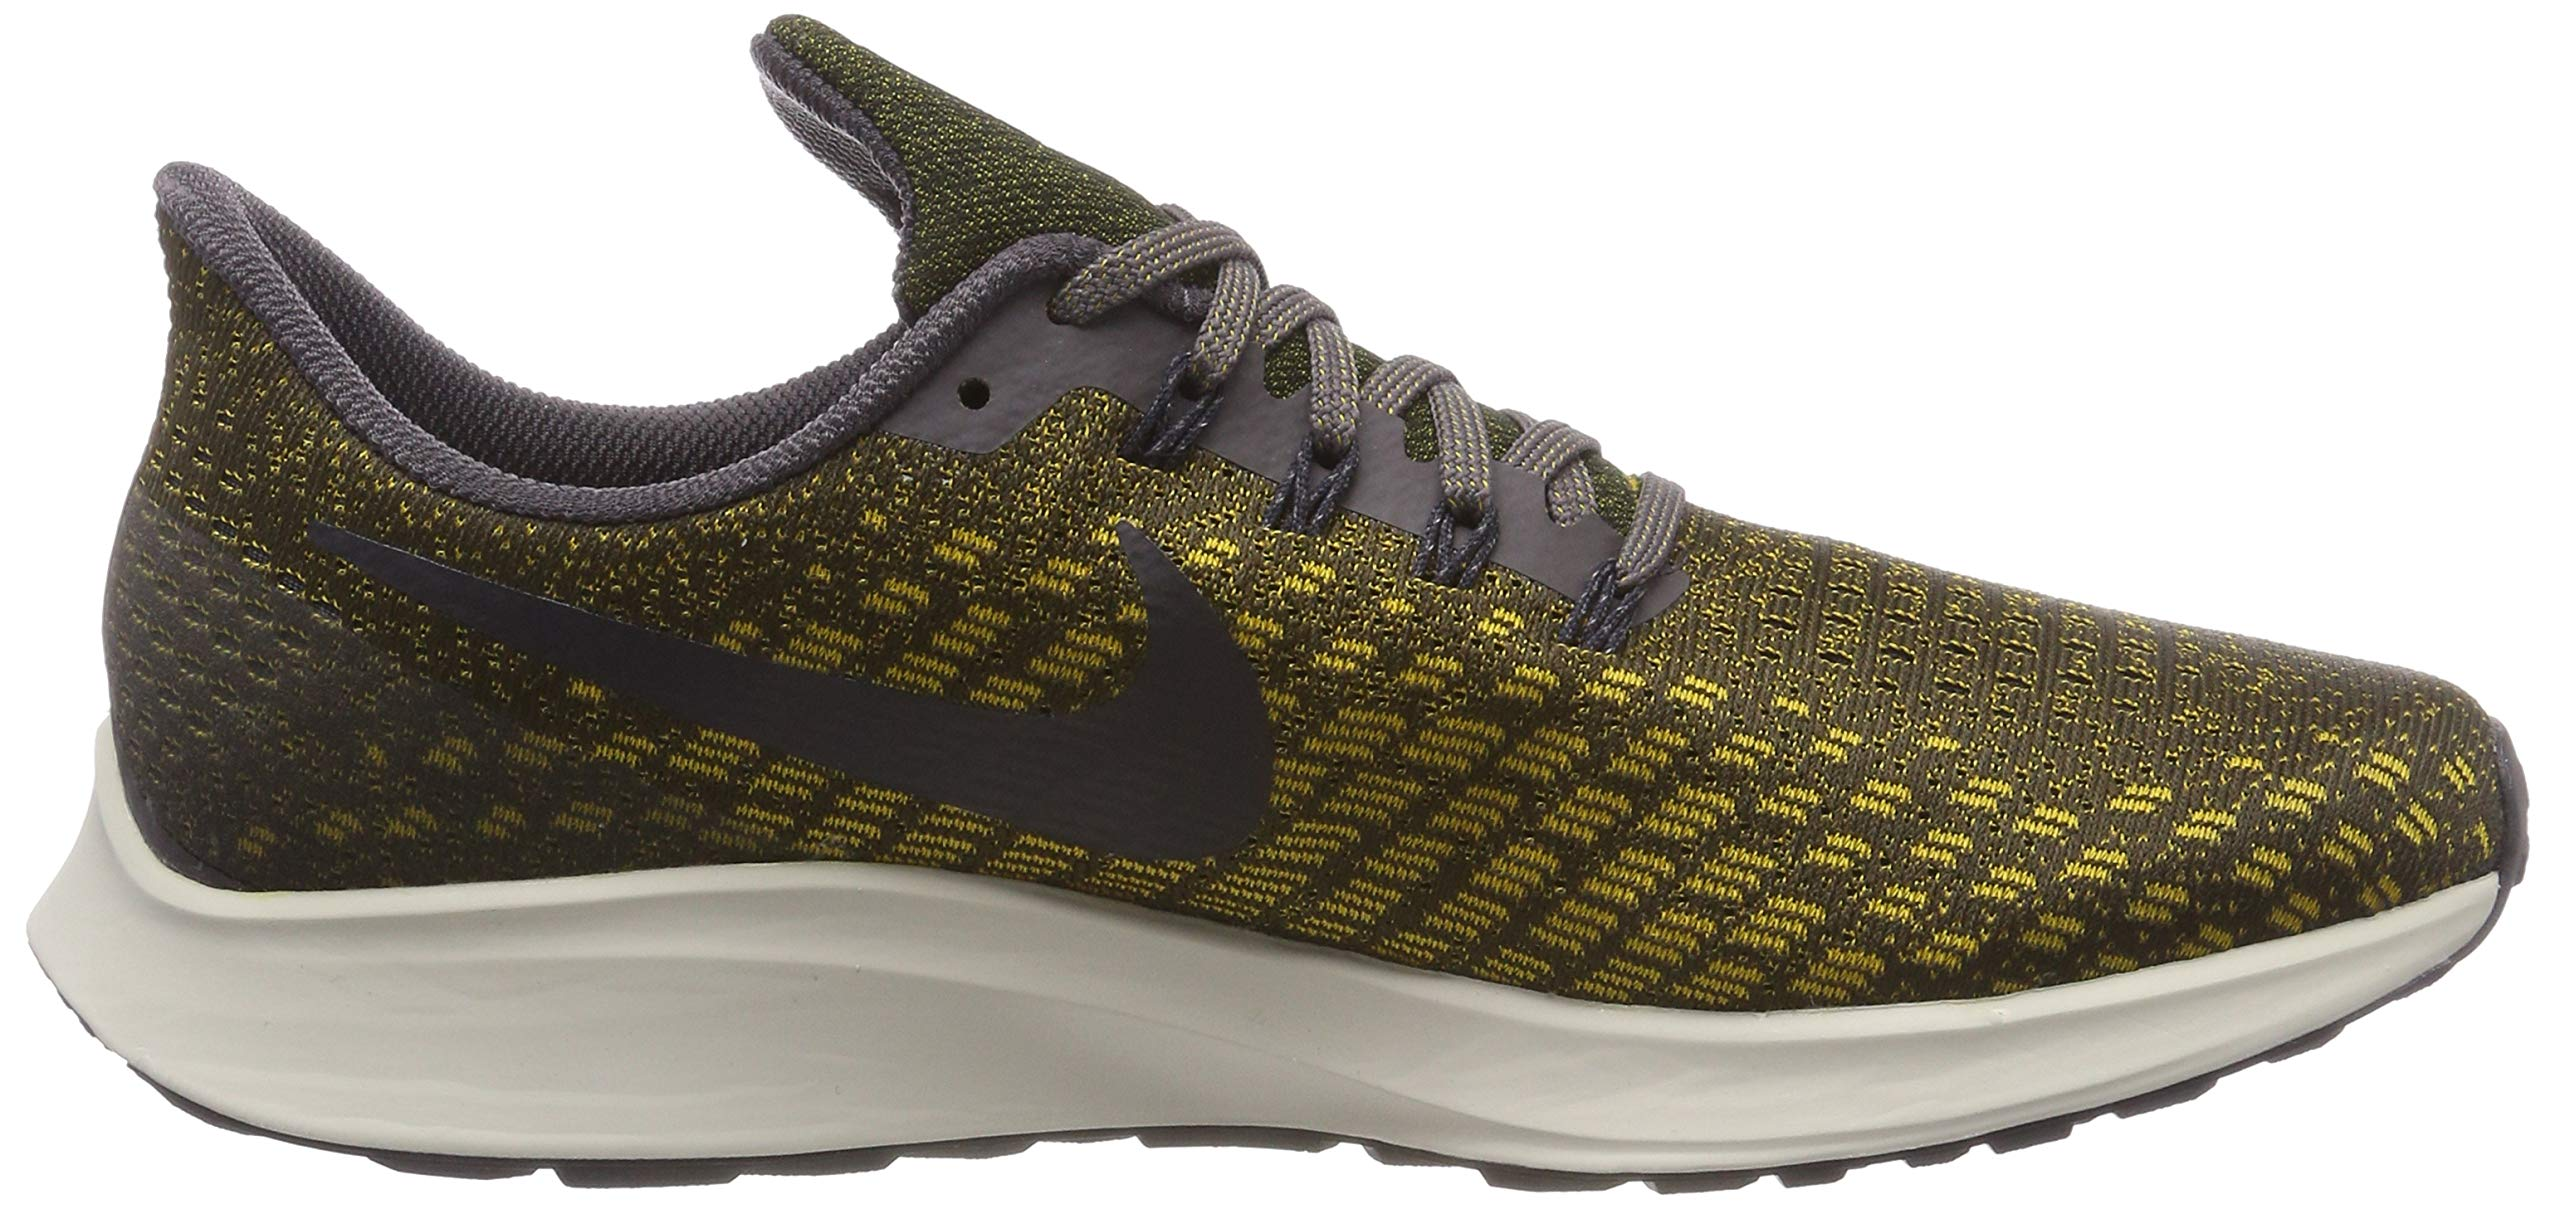 NIKE Men's Air Zoom Pegasus 35 Running Shoes (6, Olive) by Nike (Image #6)